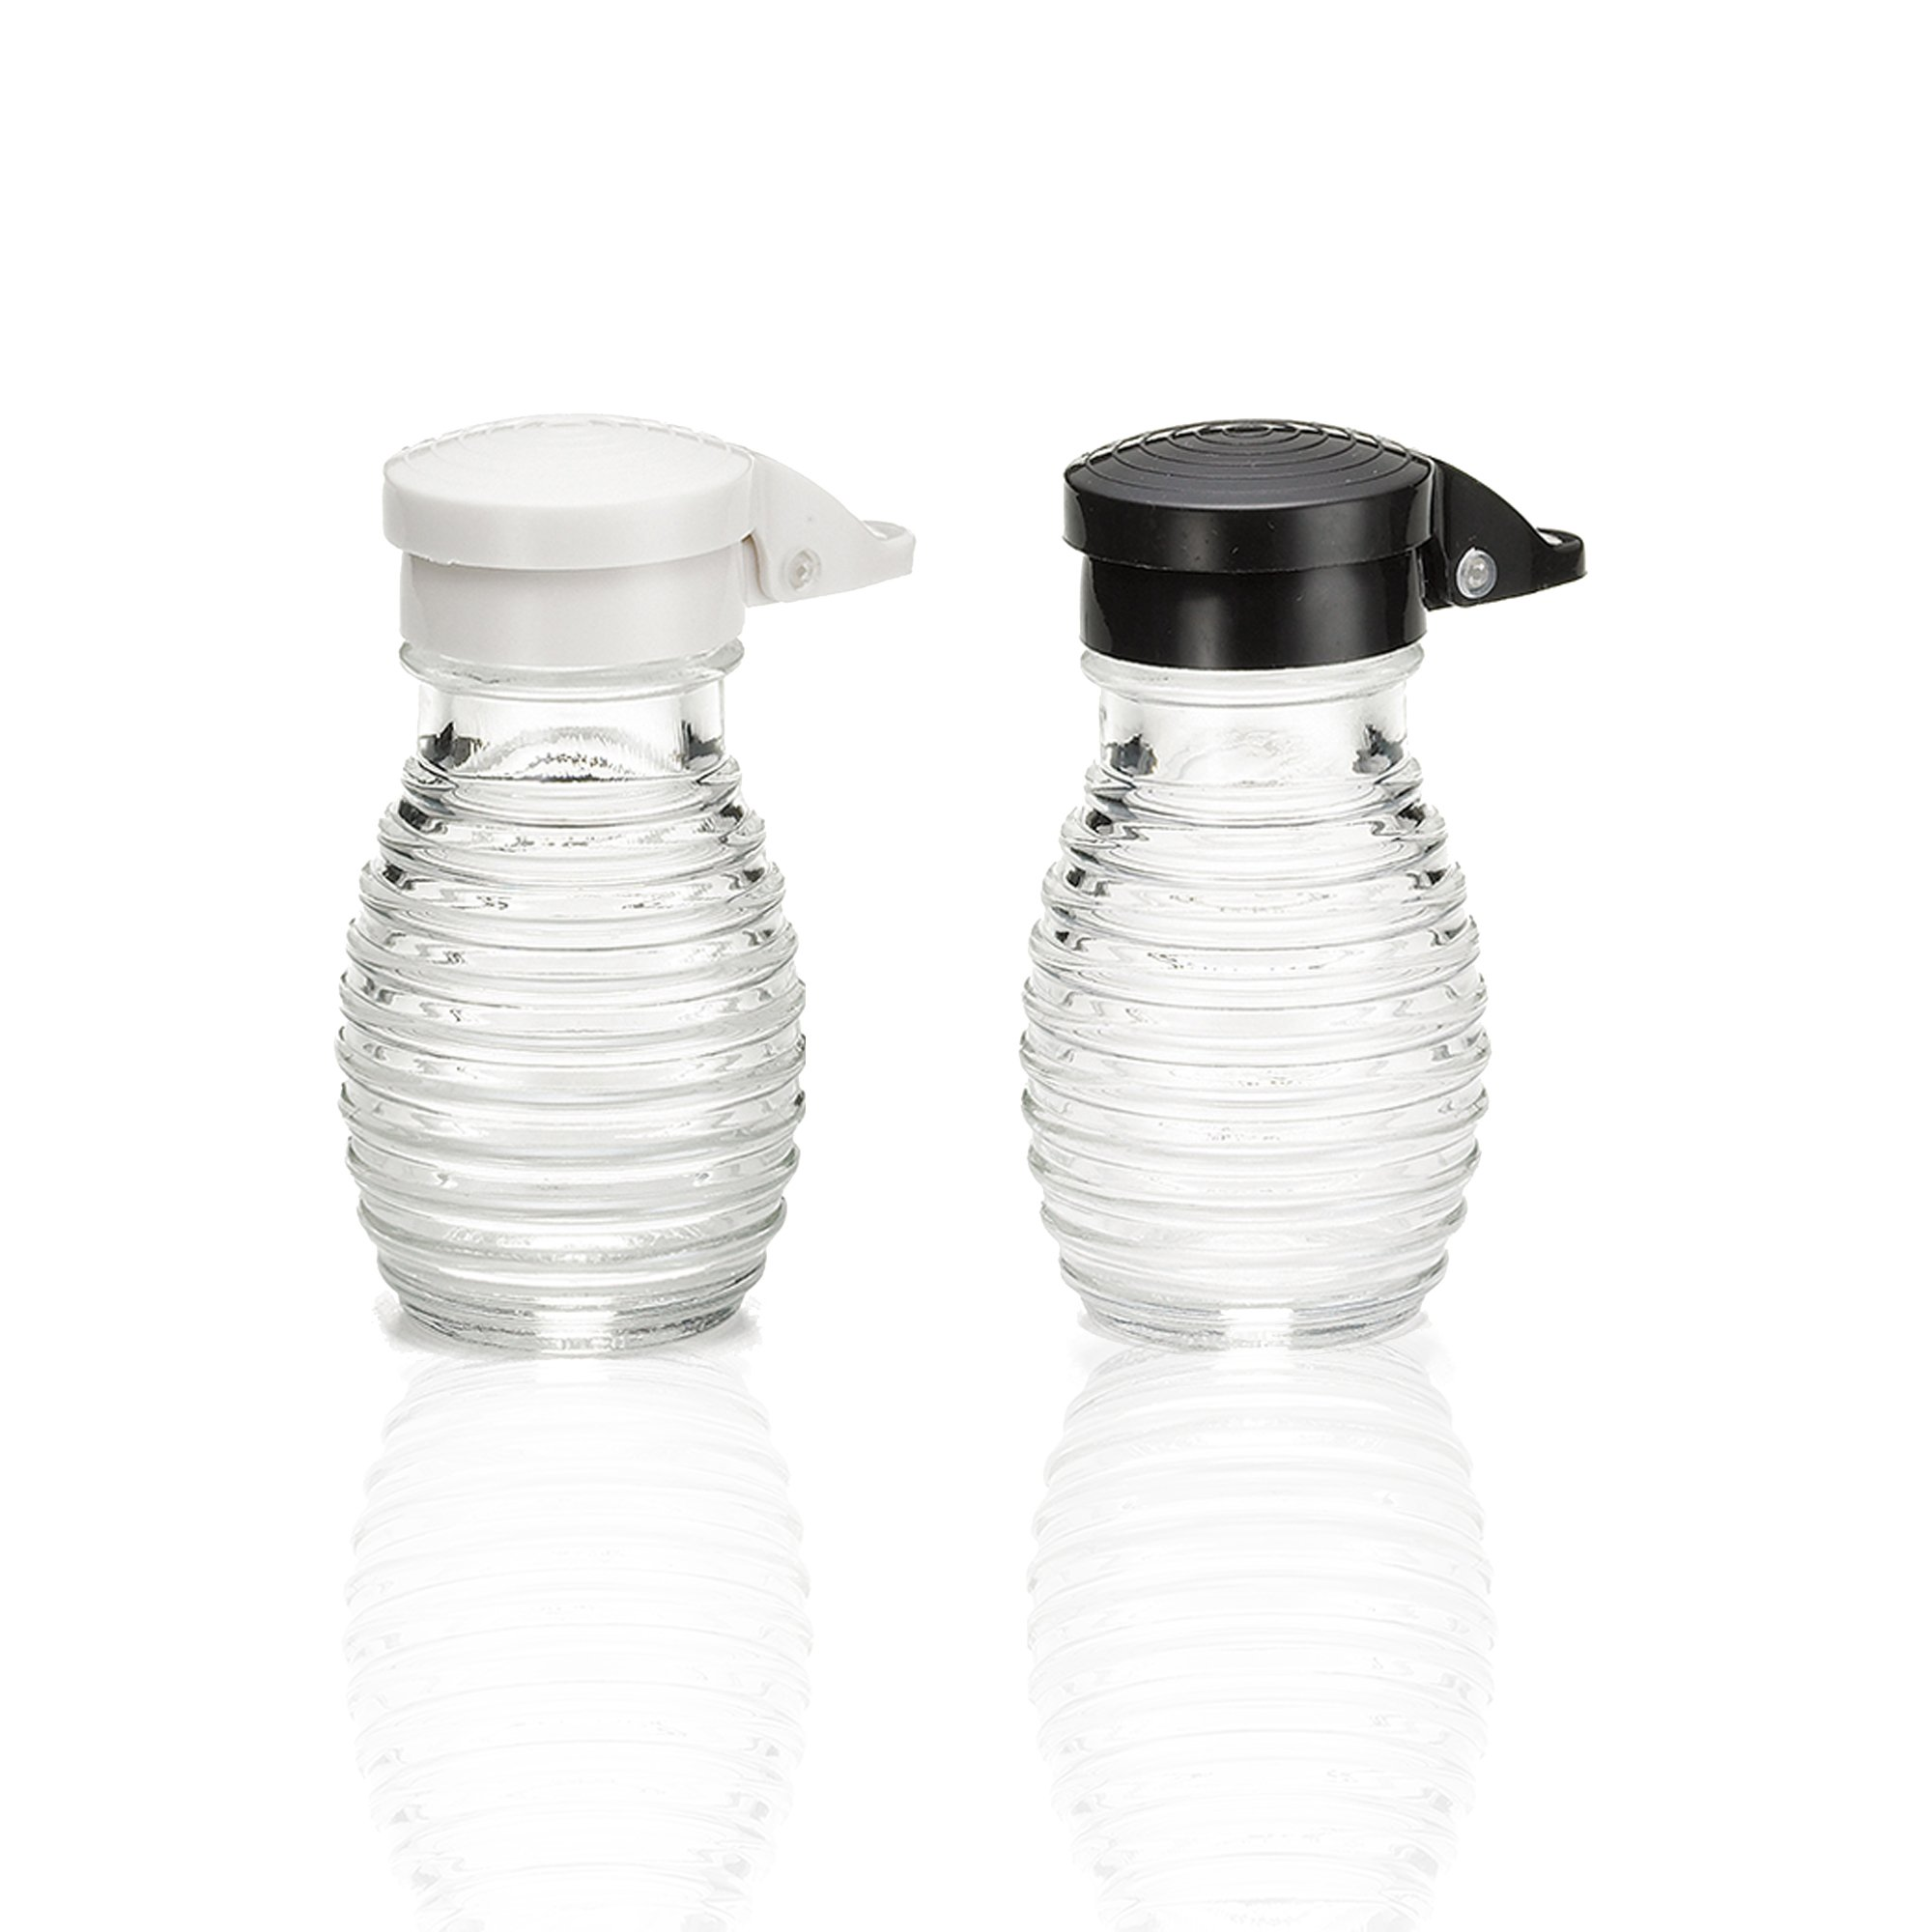 Shake-It-Free Shakers - Tumbler Home Exclusive Moisture Proof Salt & Pepper Shakers, Black & White Lids Spring Loaded, No Clog, 2 Oz, Set of 2